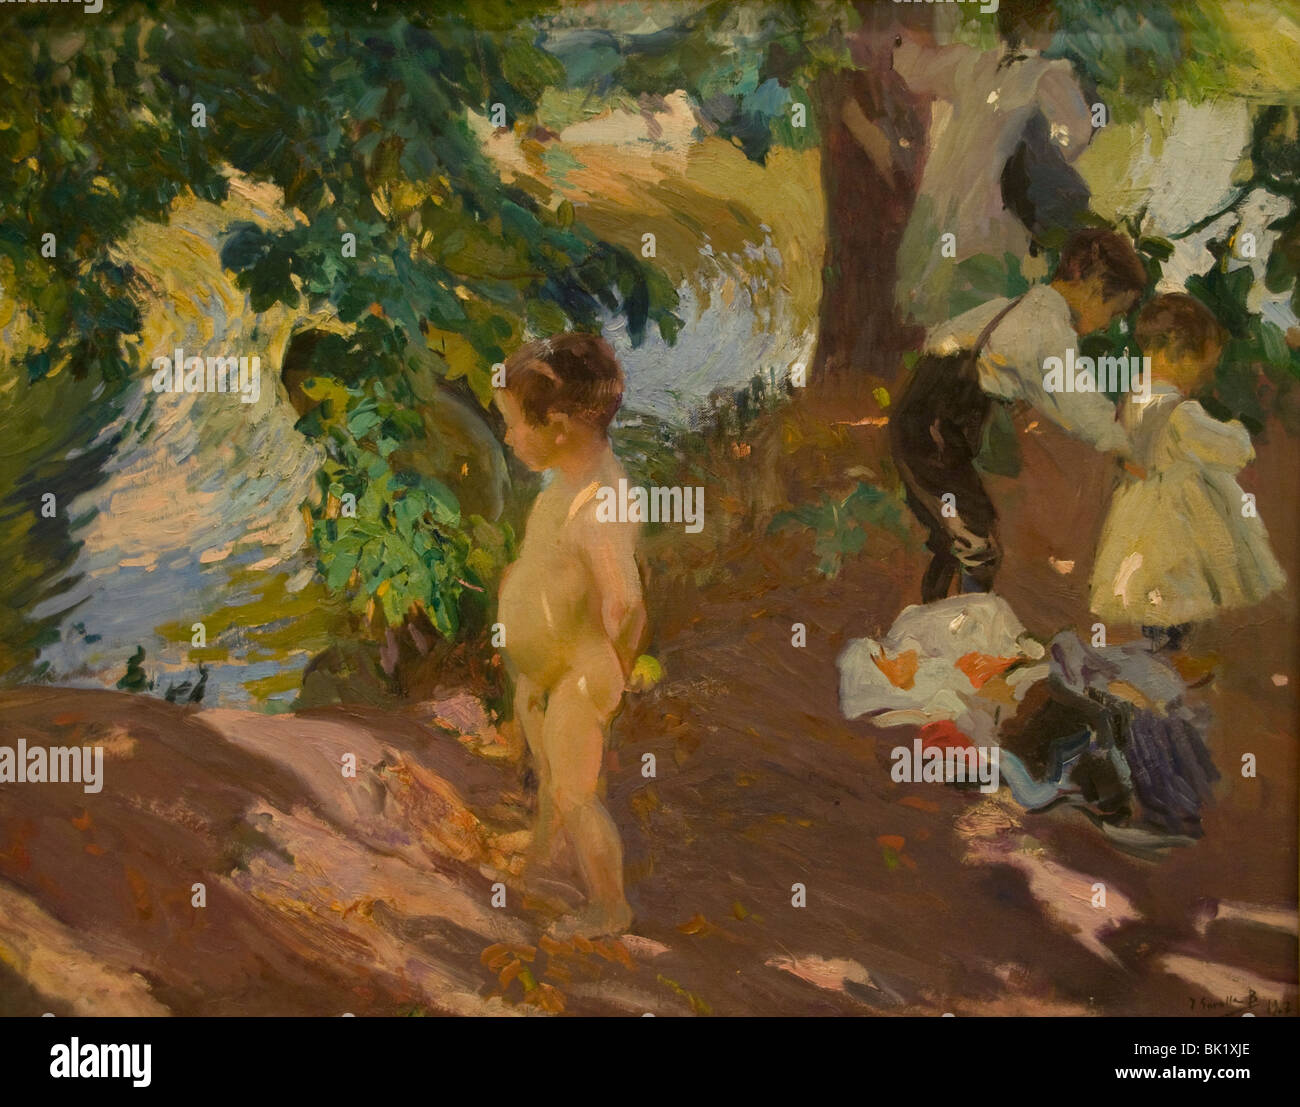 Joaquin Sorolla Spain Spanish Painter The Bath at la Granja 1907 - Stock Image